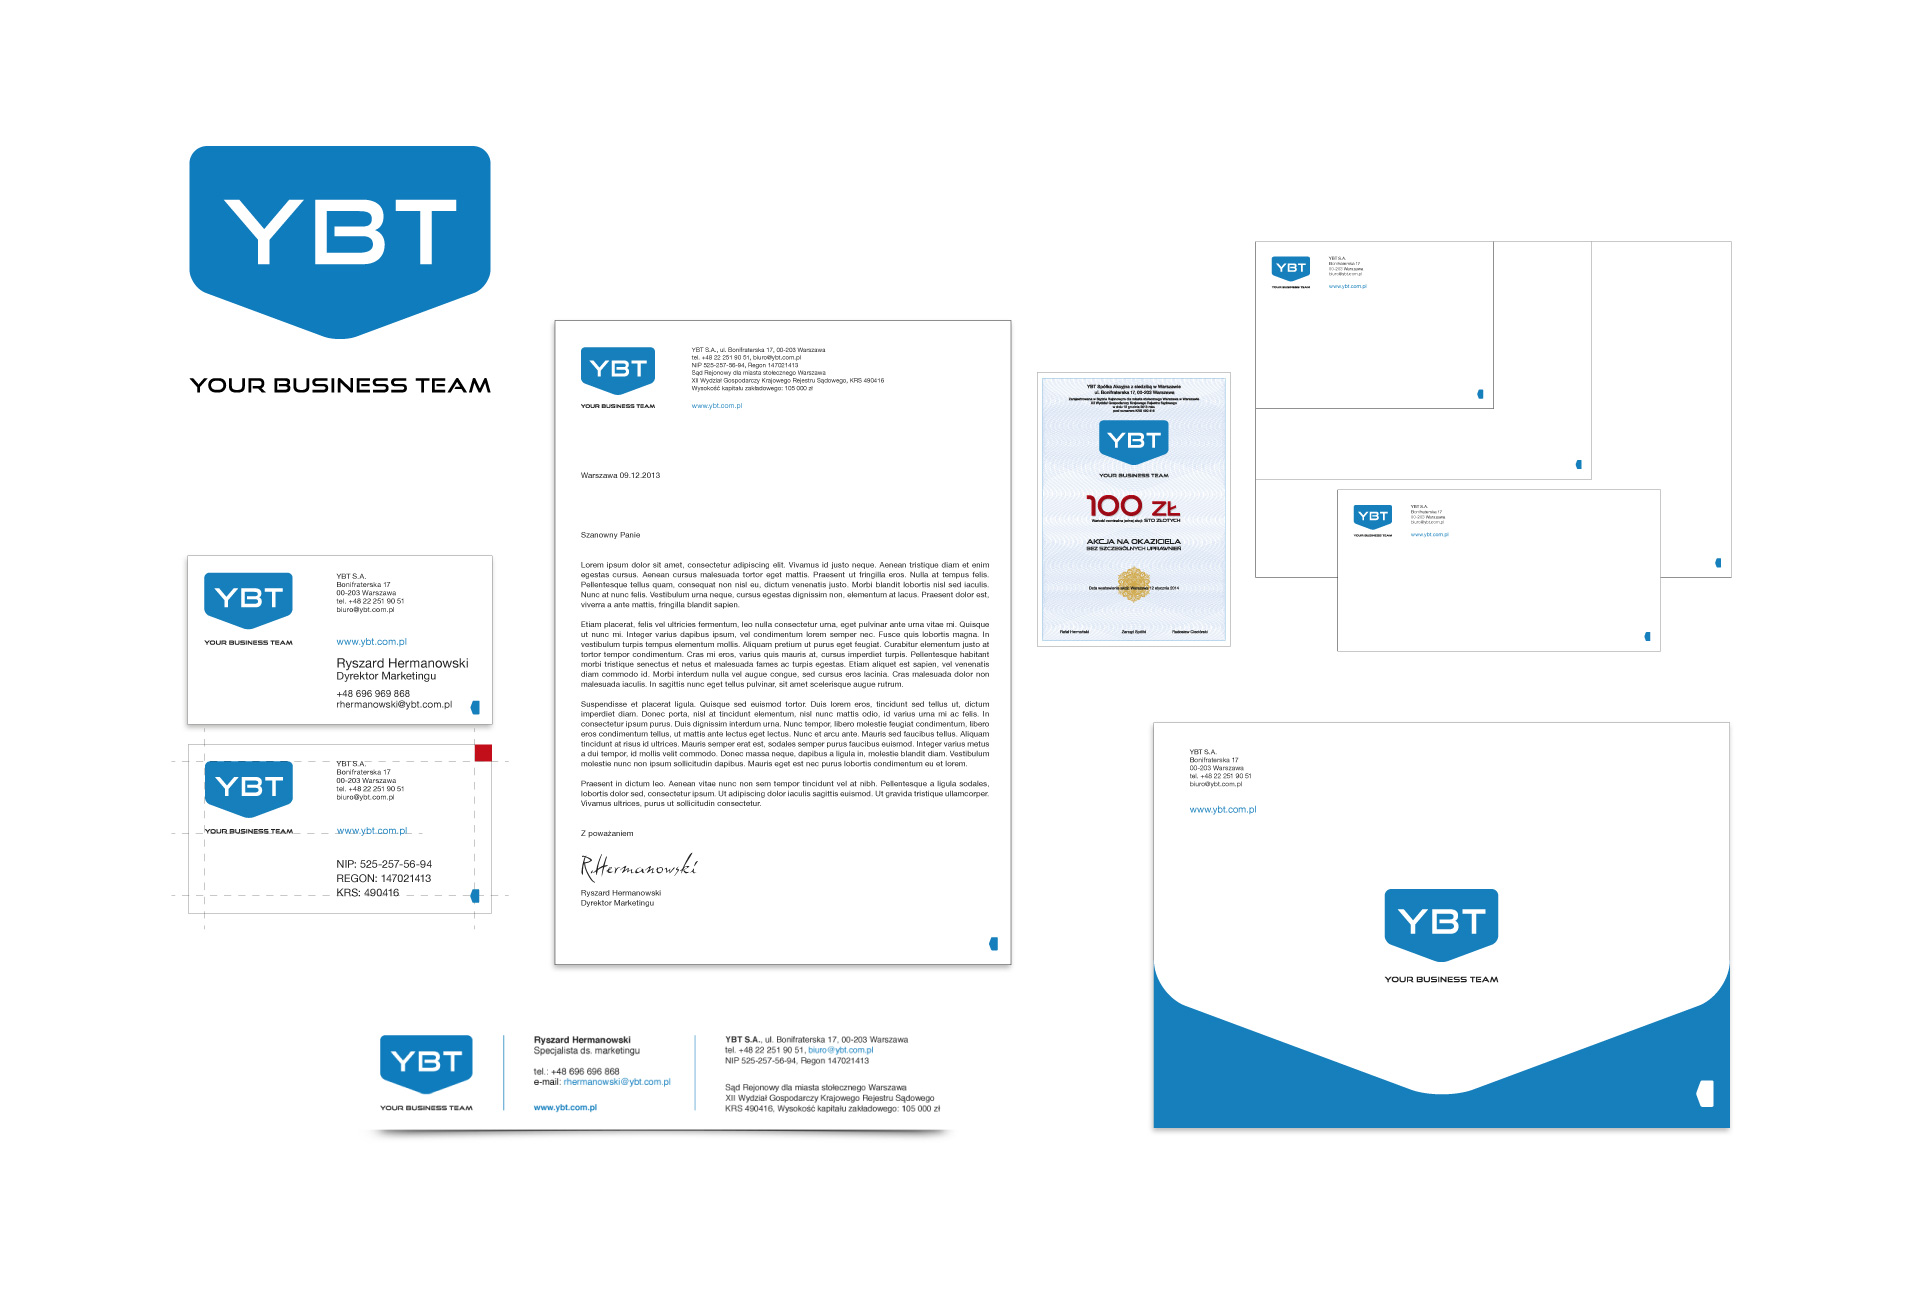 YBT-YOUR BUSINESS TEAM